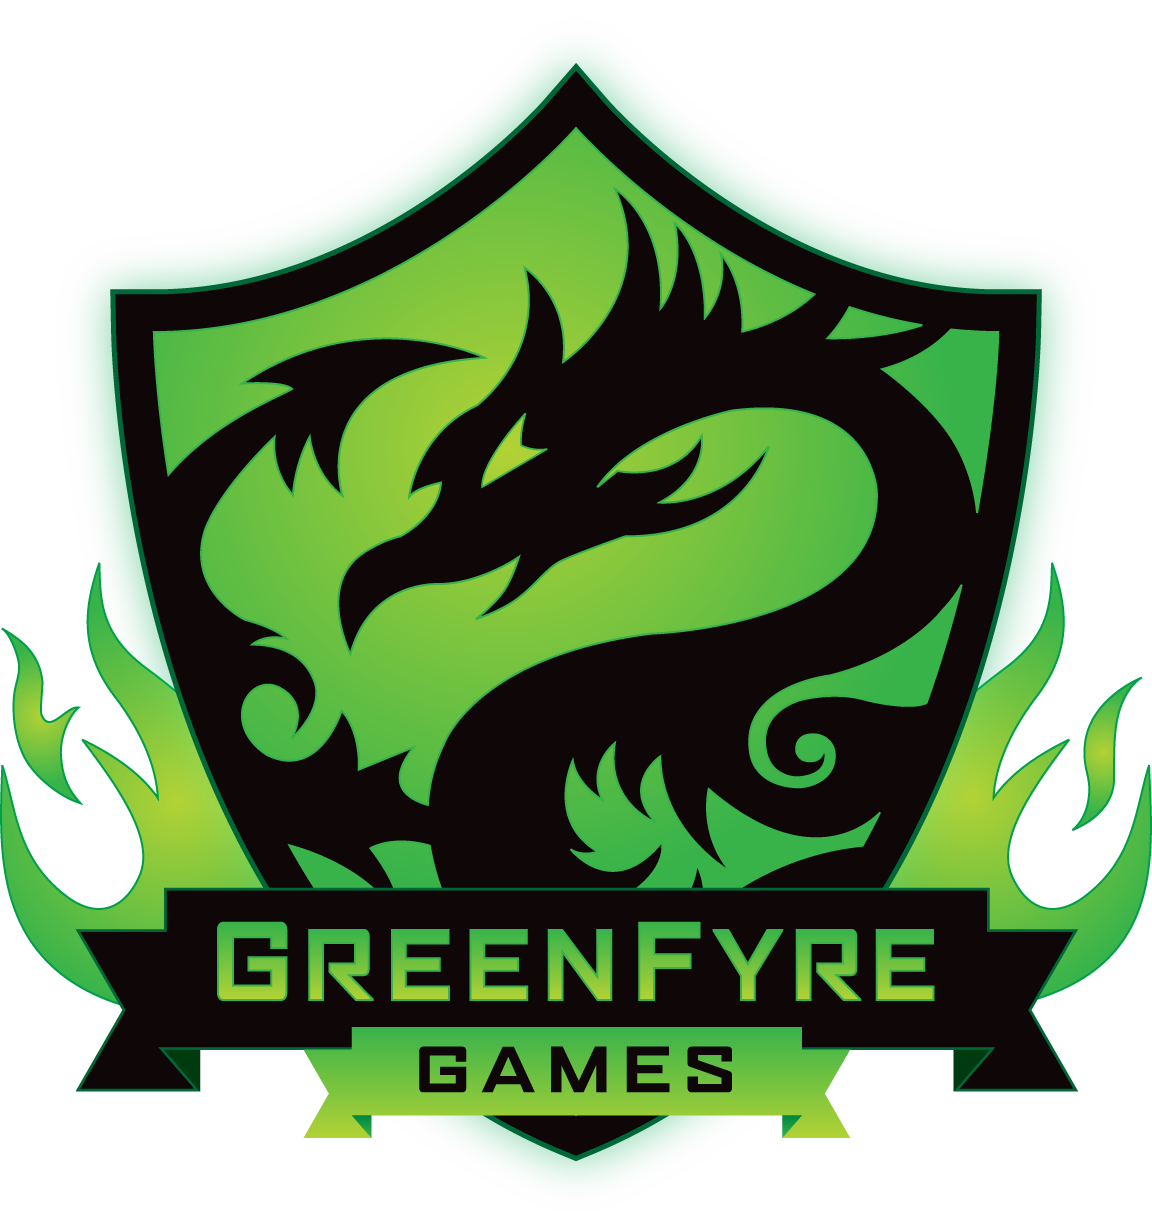 Greenfyre Games